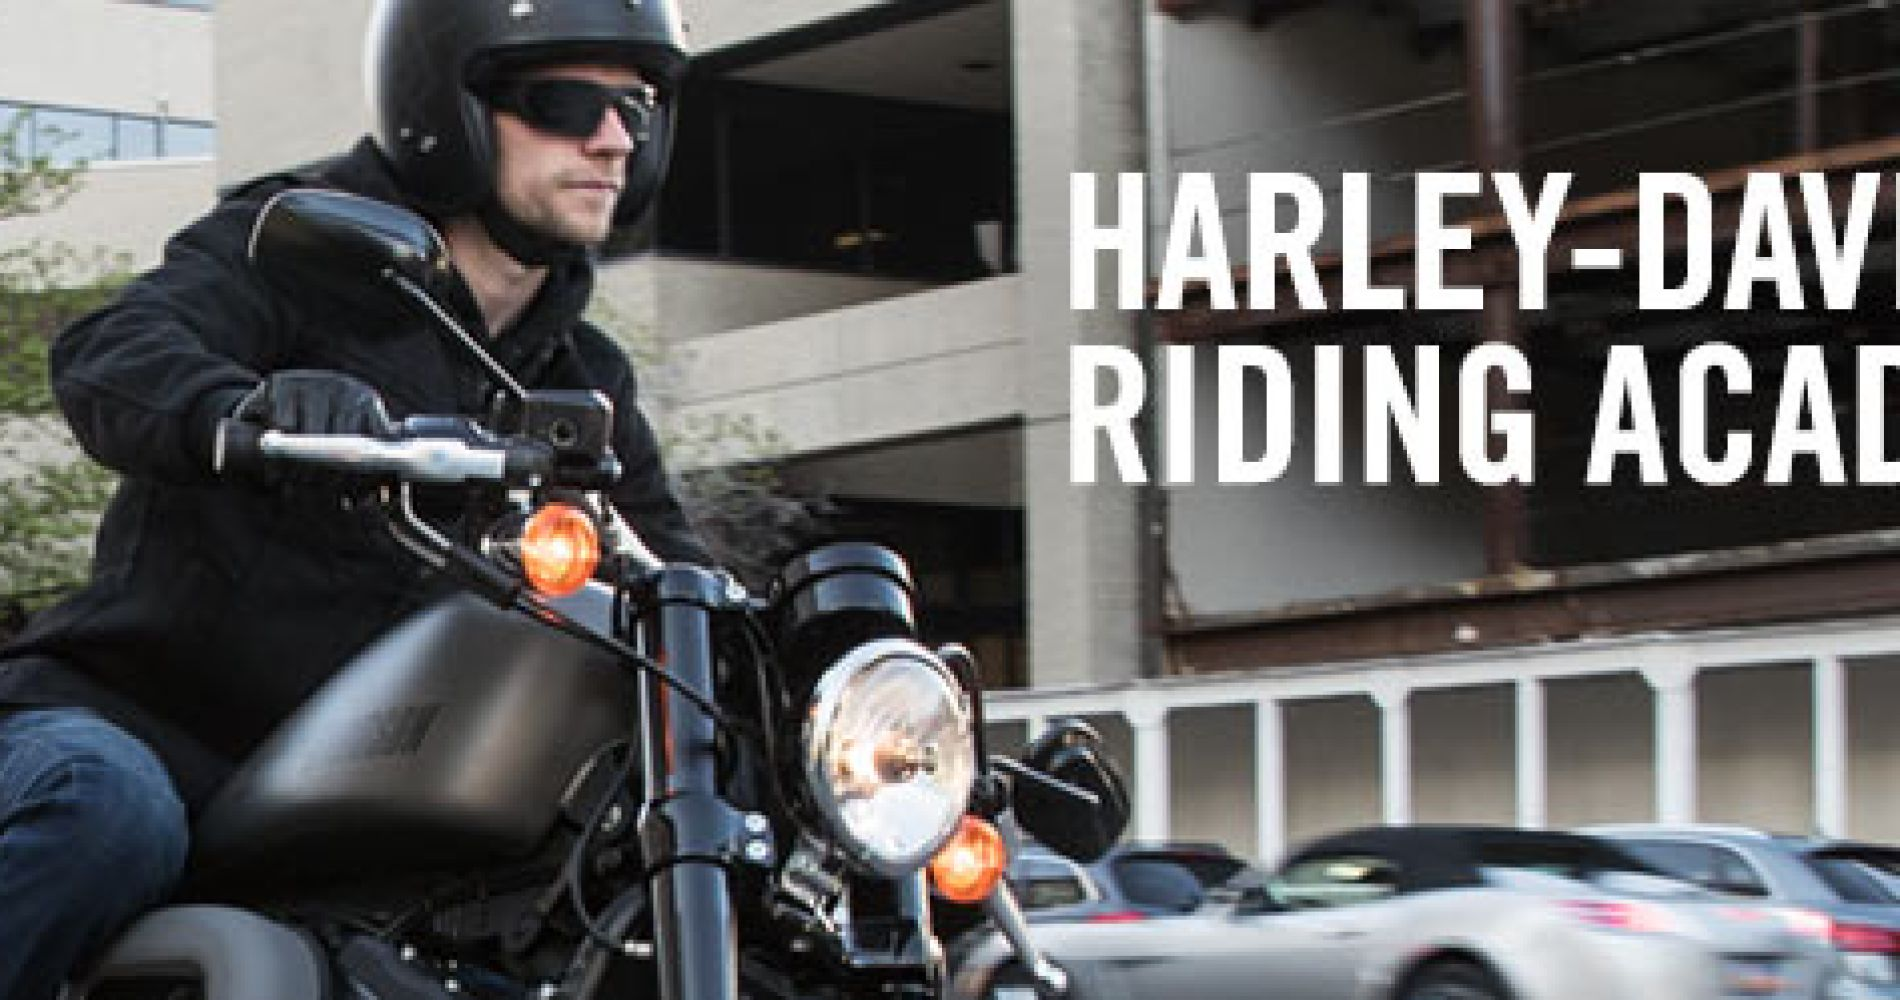 Harley Davidson™ New Rider Course in Arizona